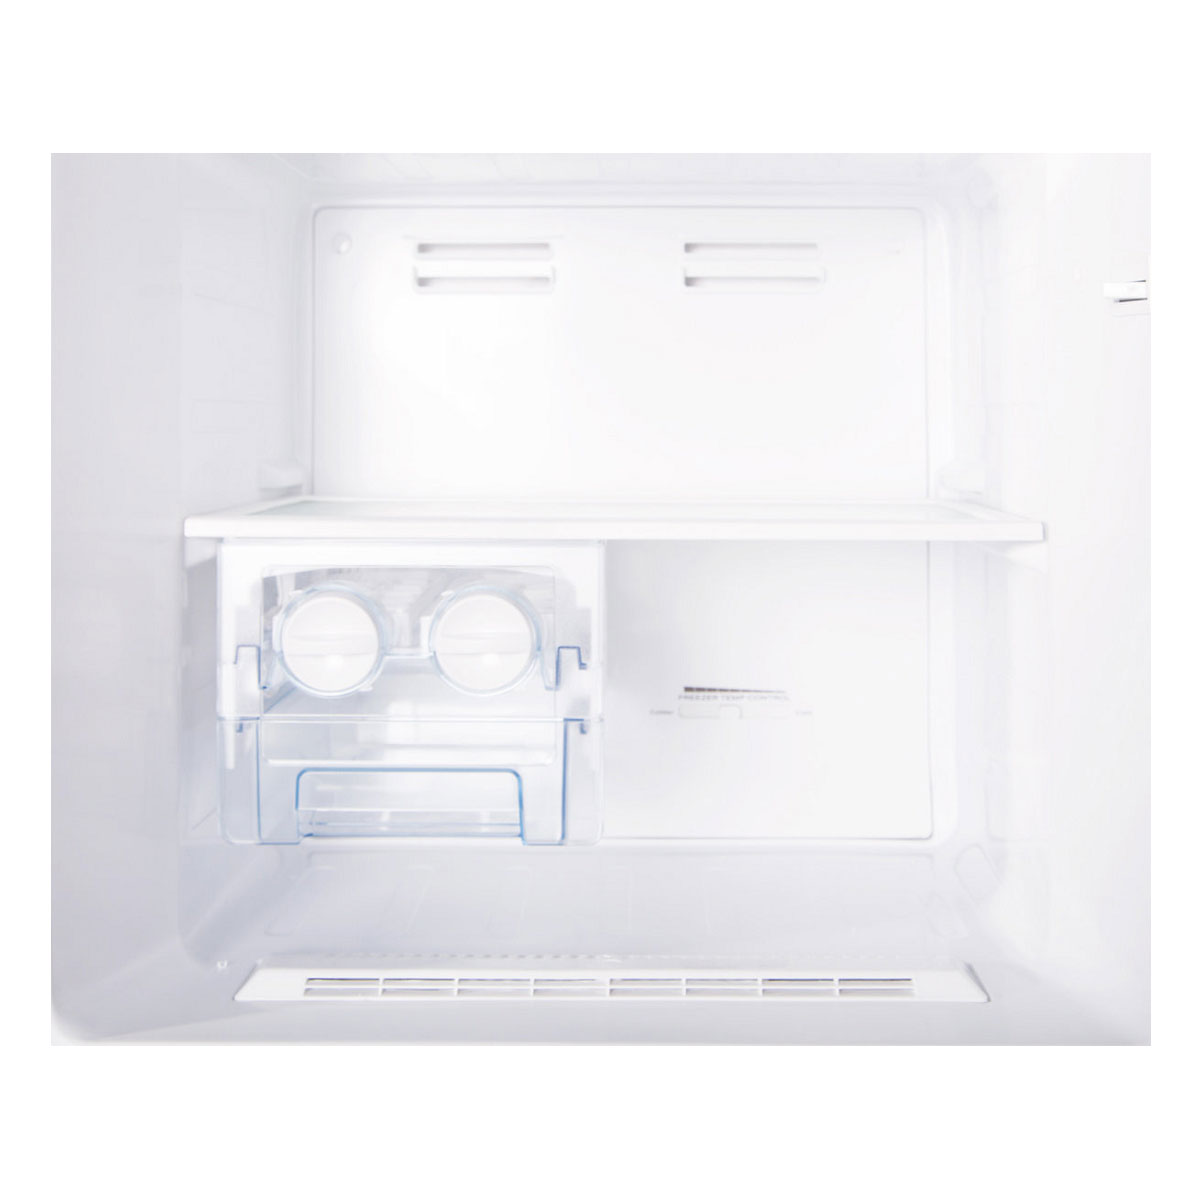 Hisense HR6TFF230 230Litres Top Mount Fridge 35255